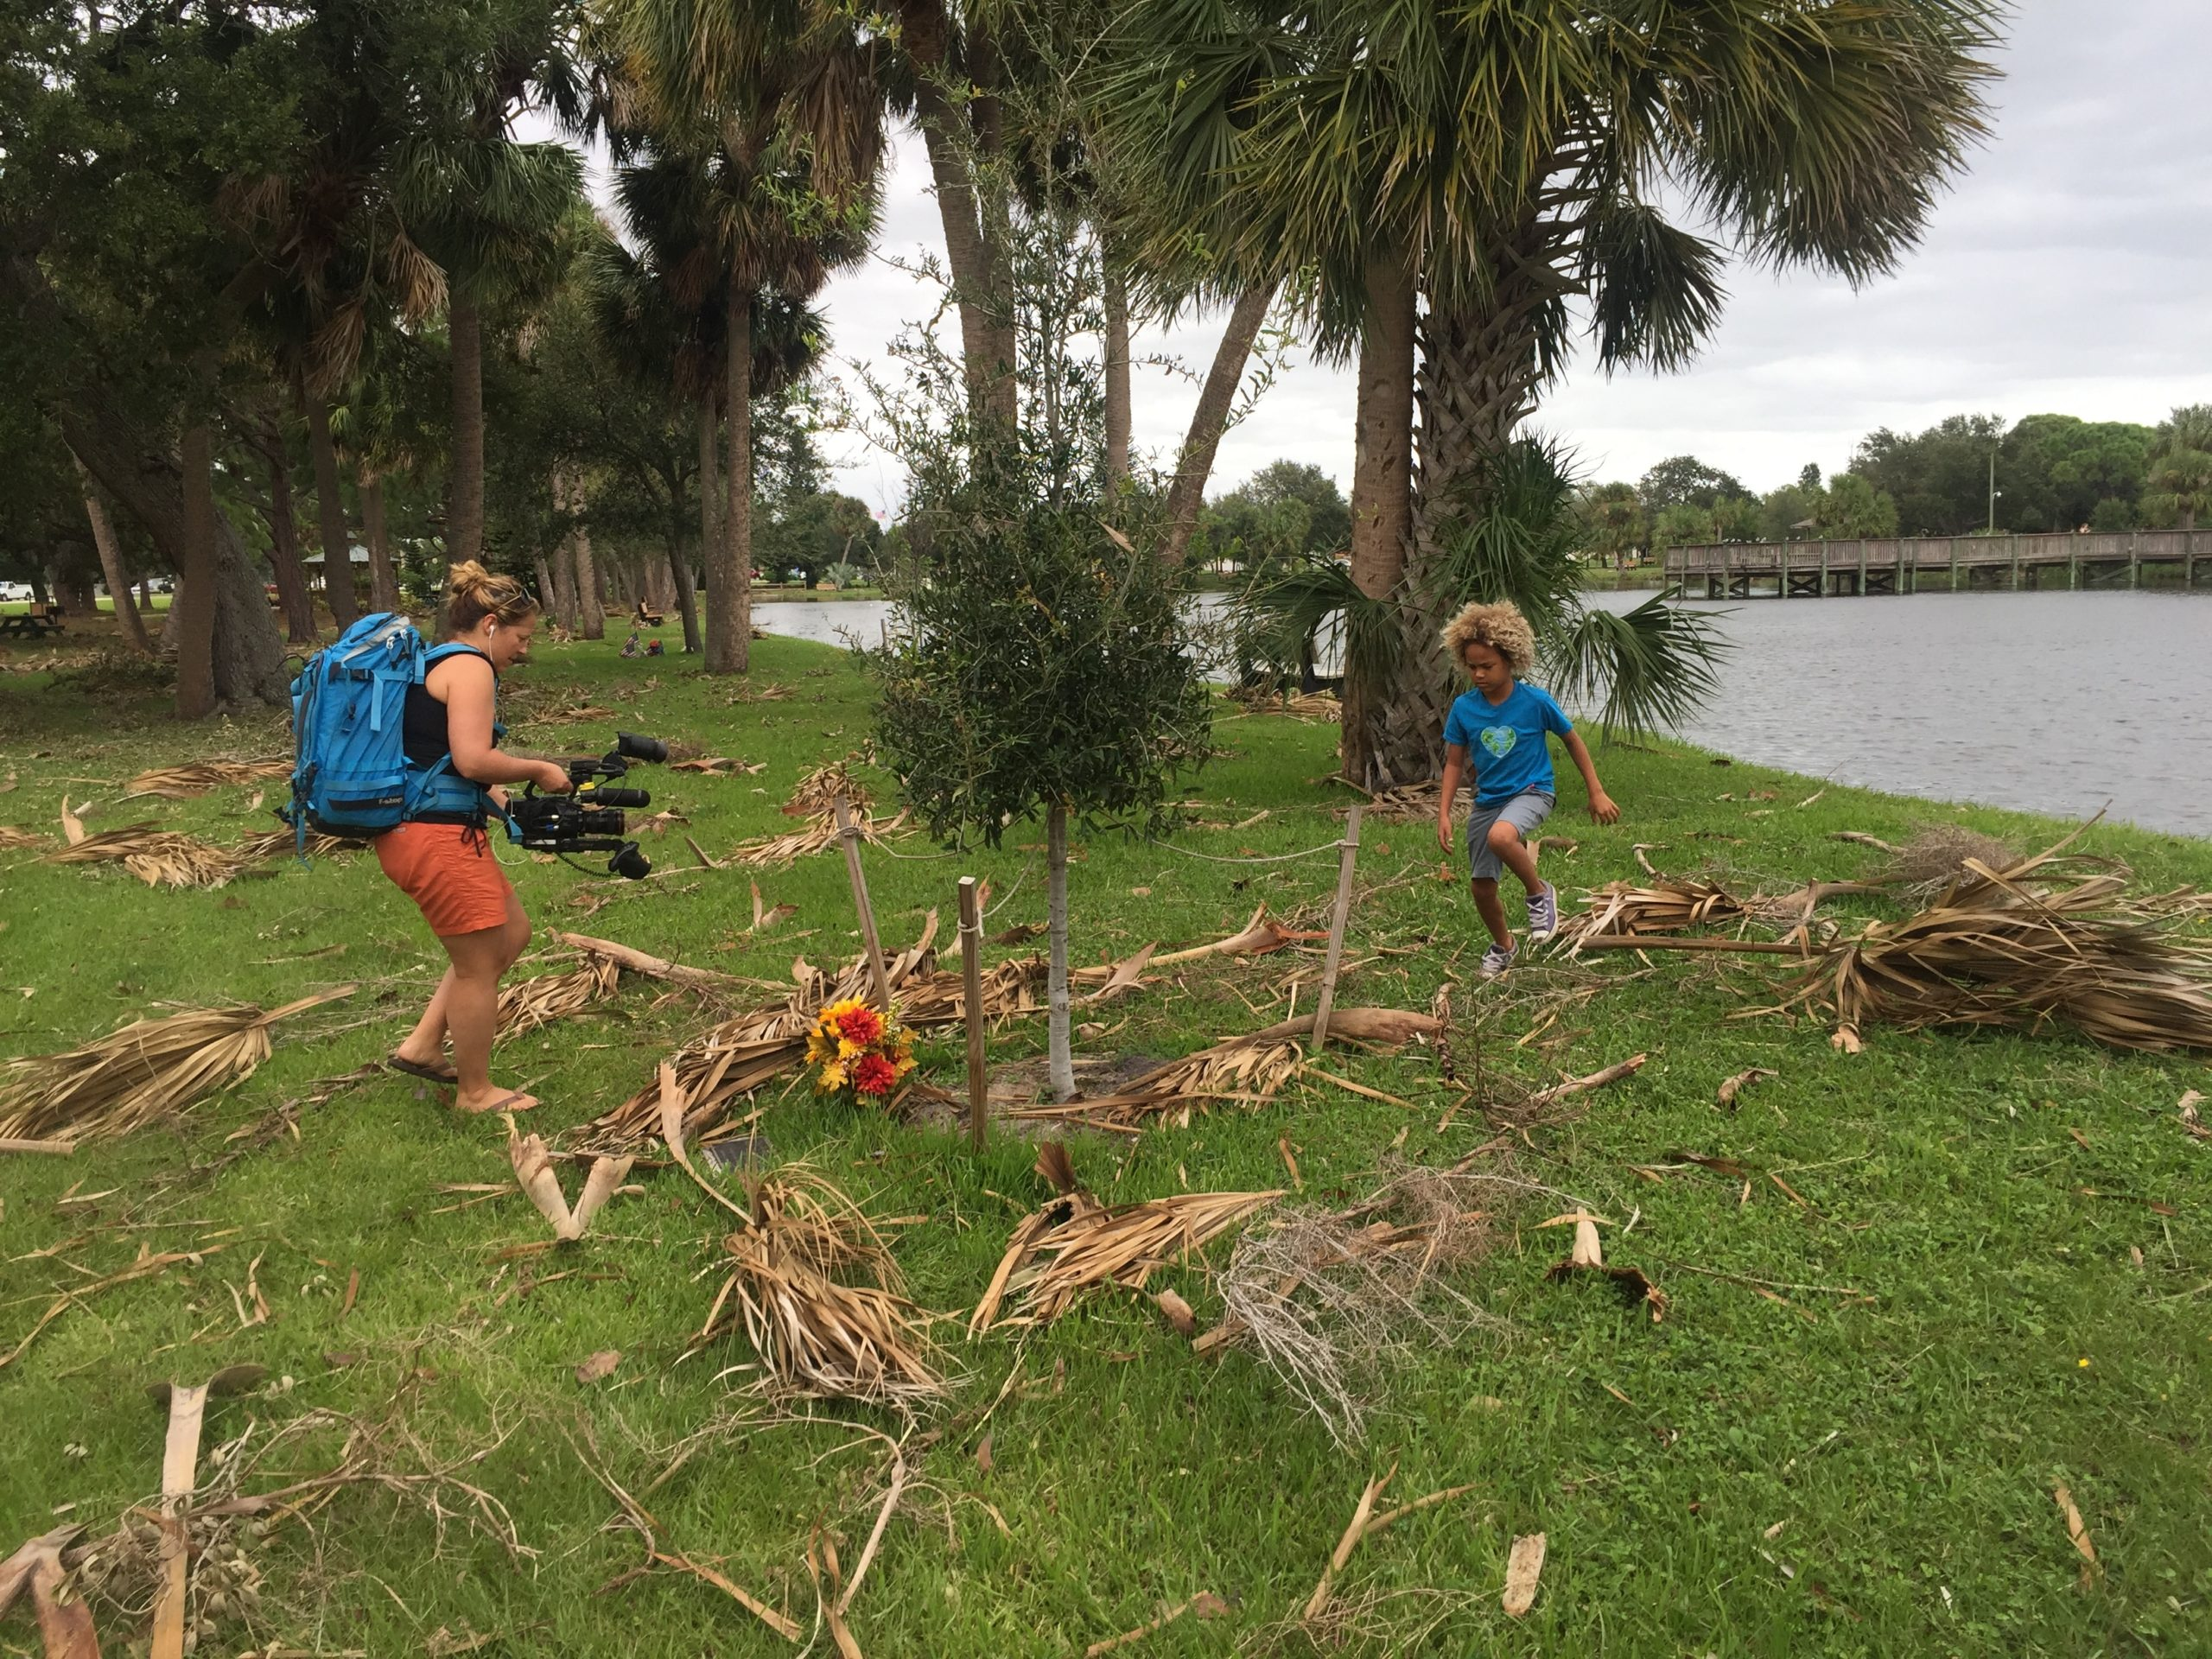 Christi Cooper filming Levi D., a plaintiff in the youth climate change case, near his Florida home after a storm.